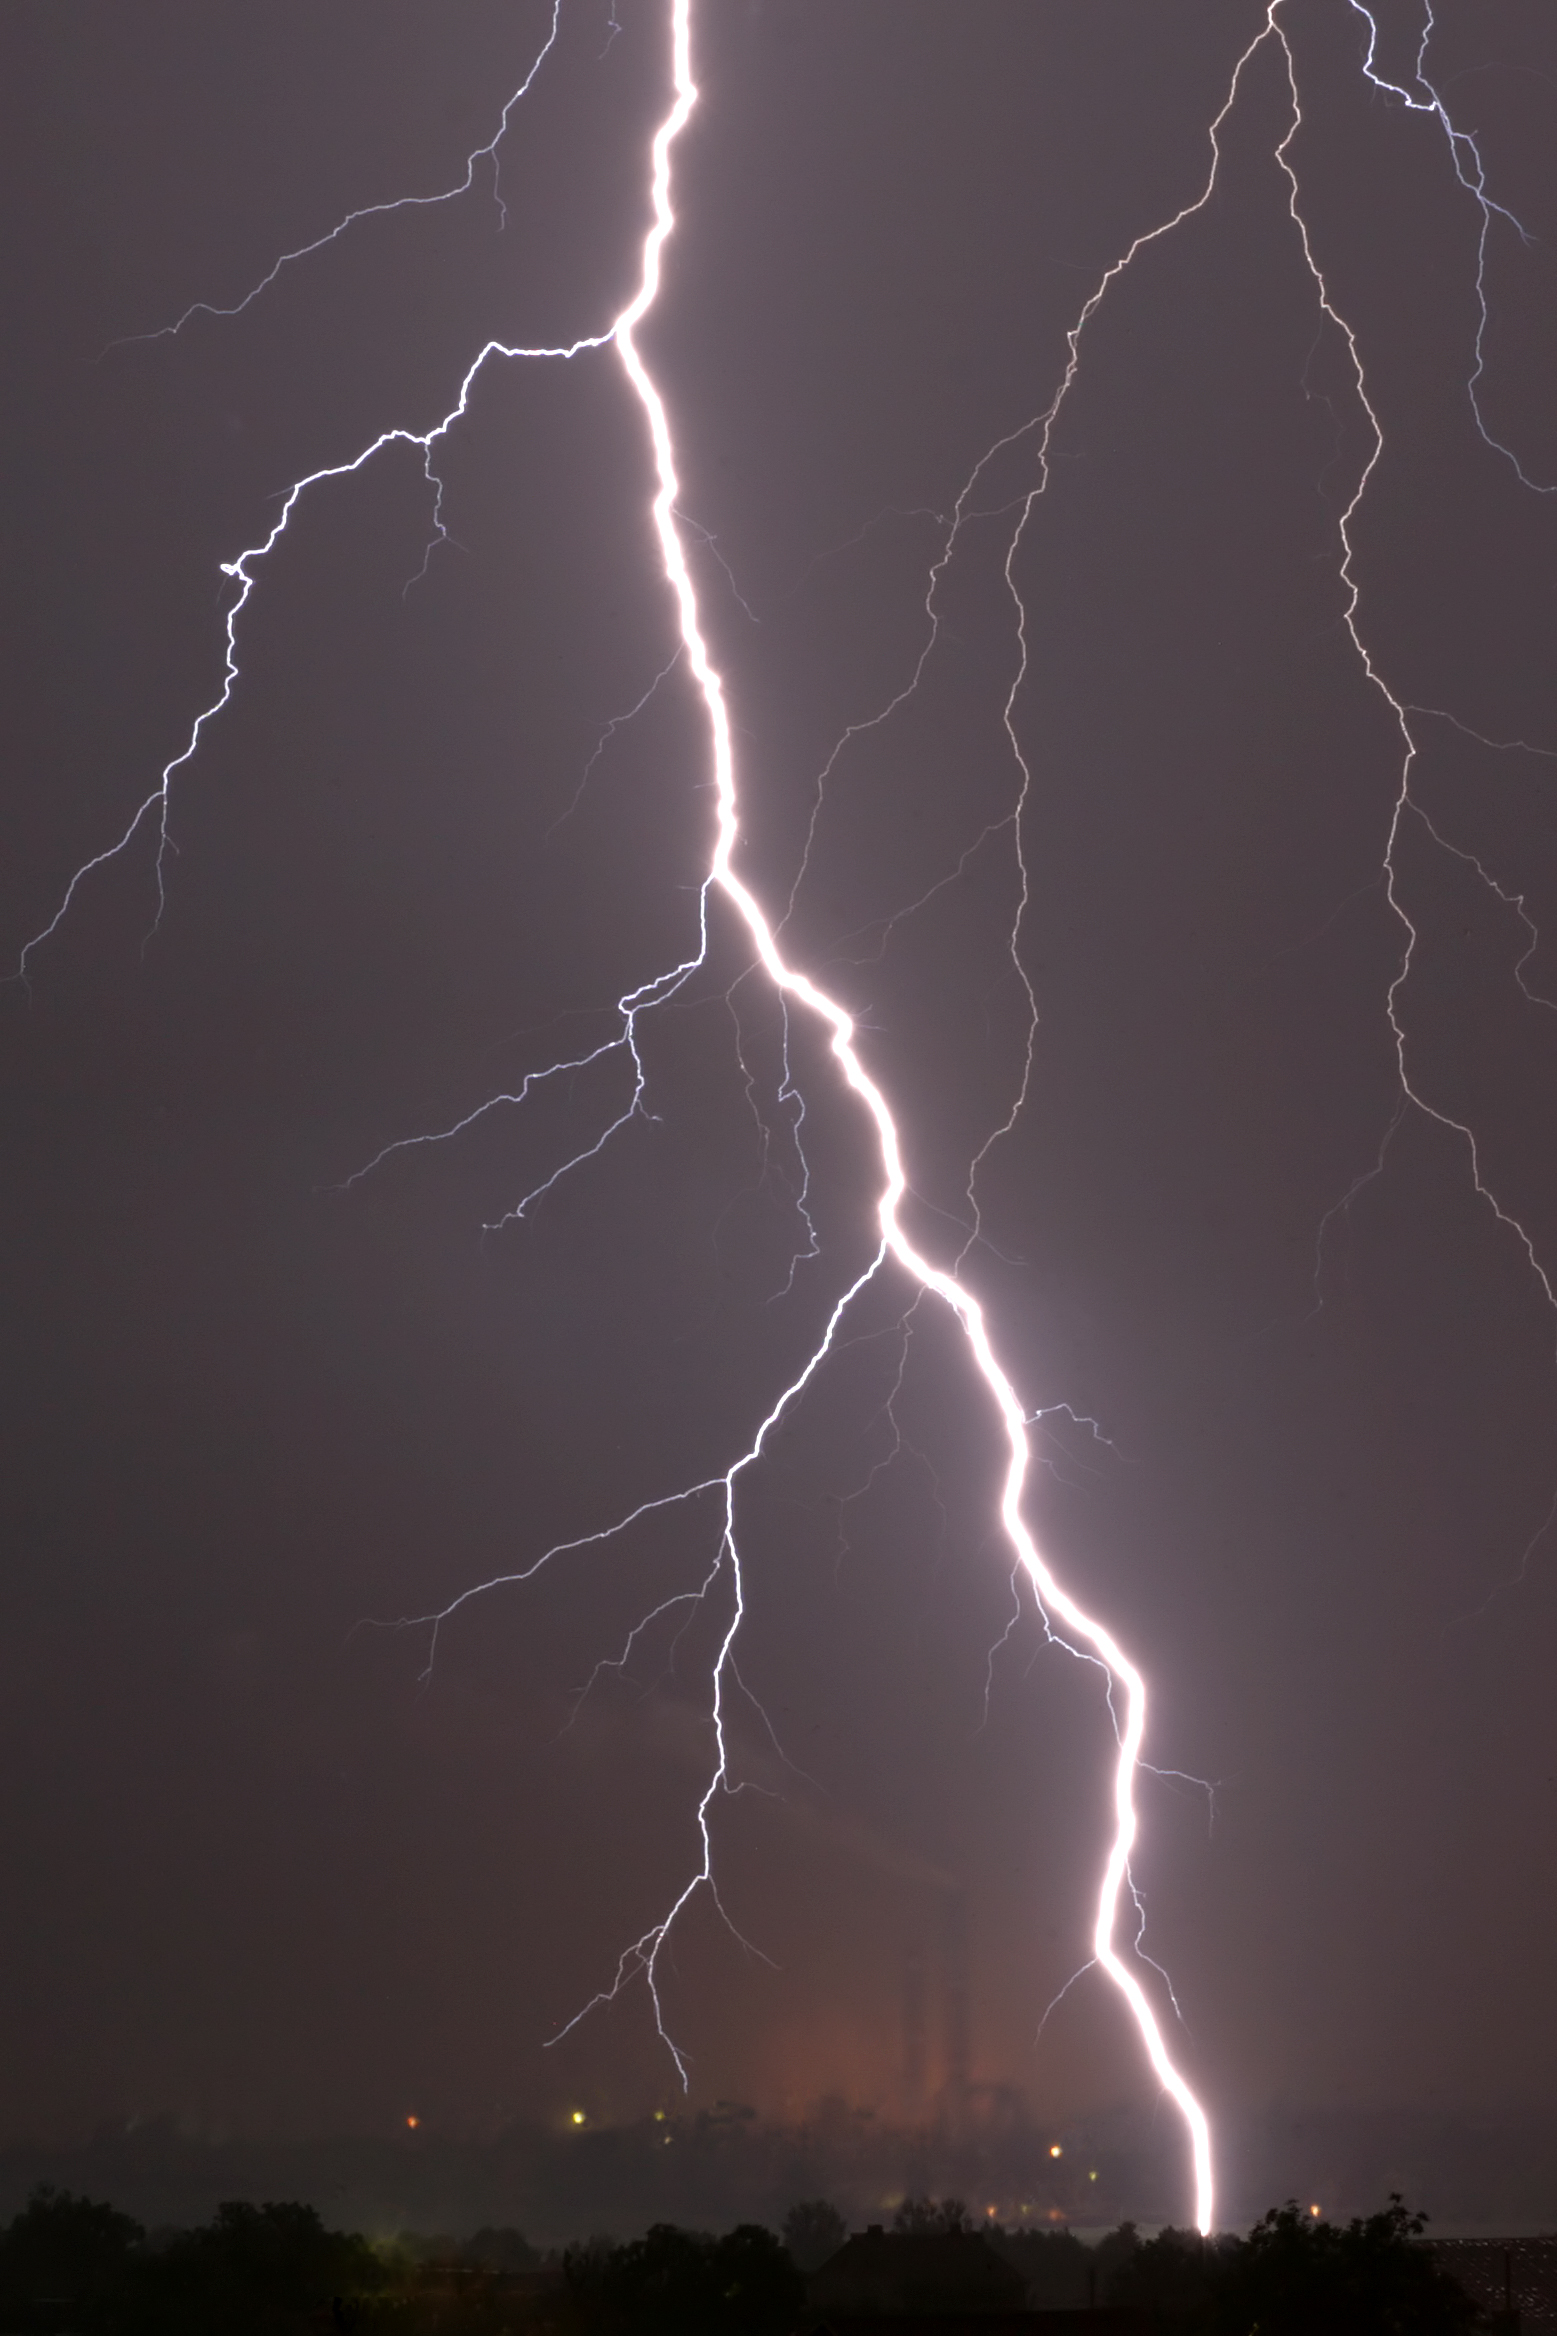 File:Lightning in Zdolbuniv.jpg - Wikimedia Commons